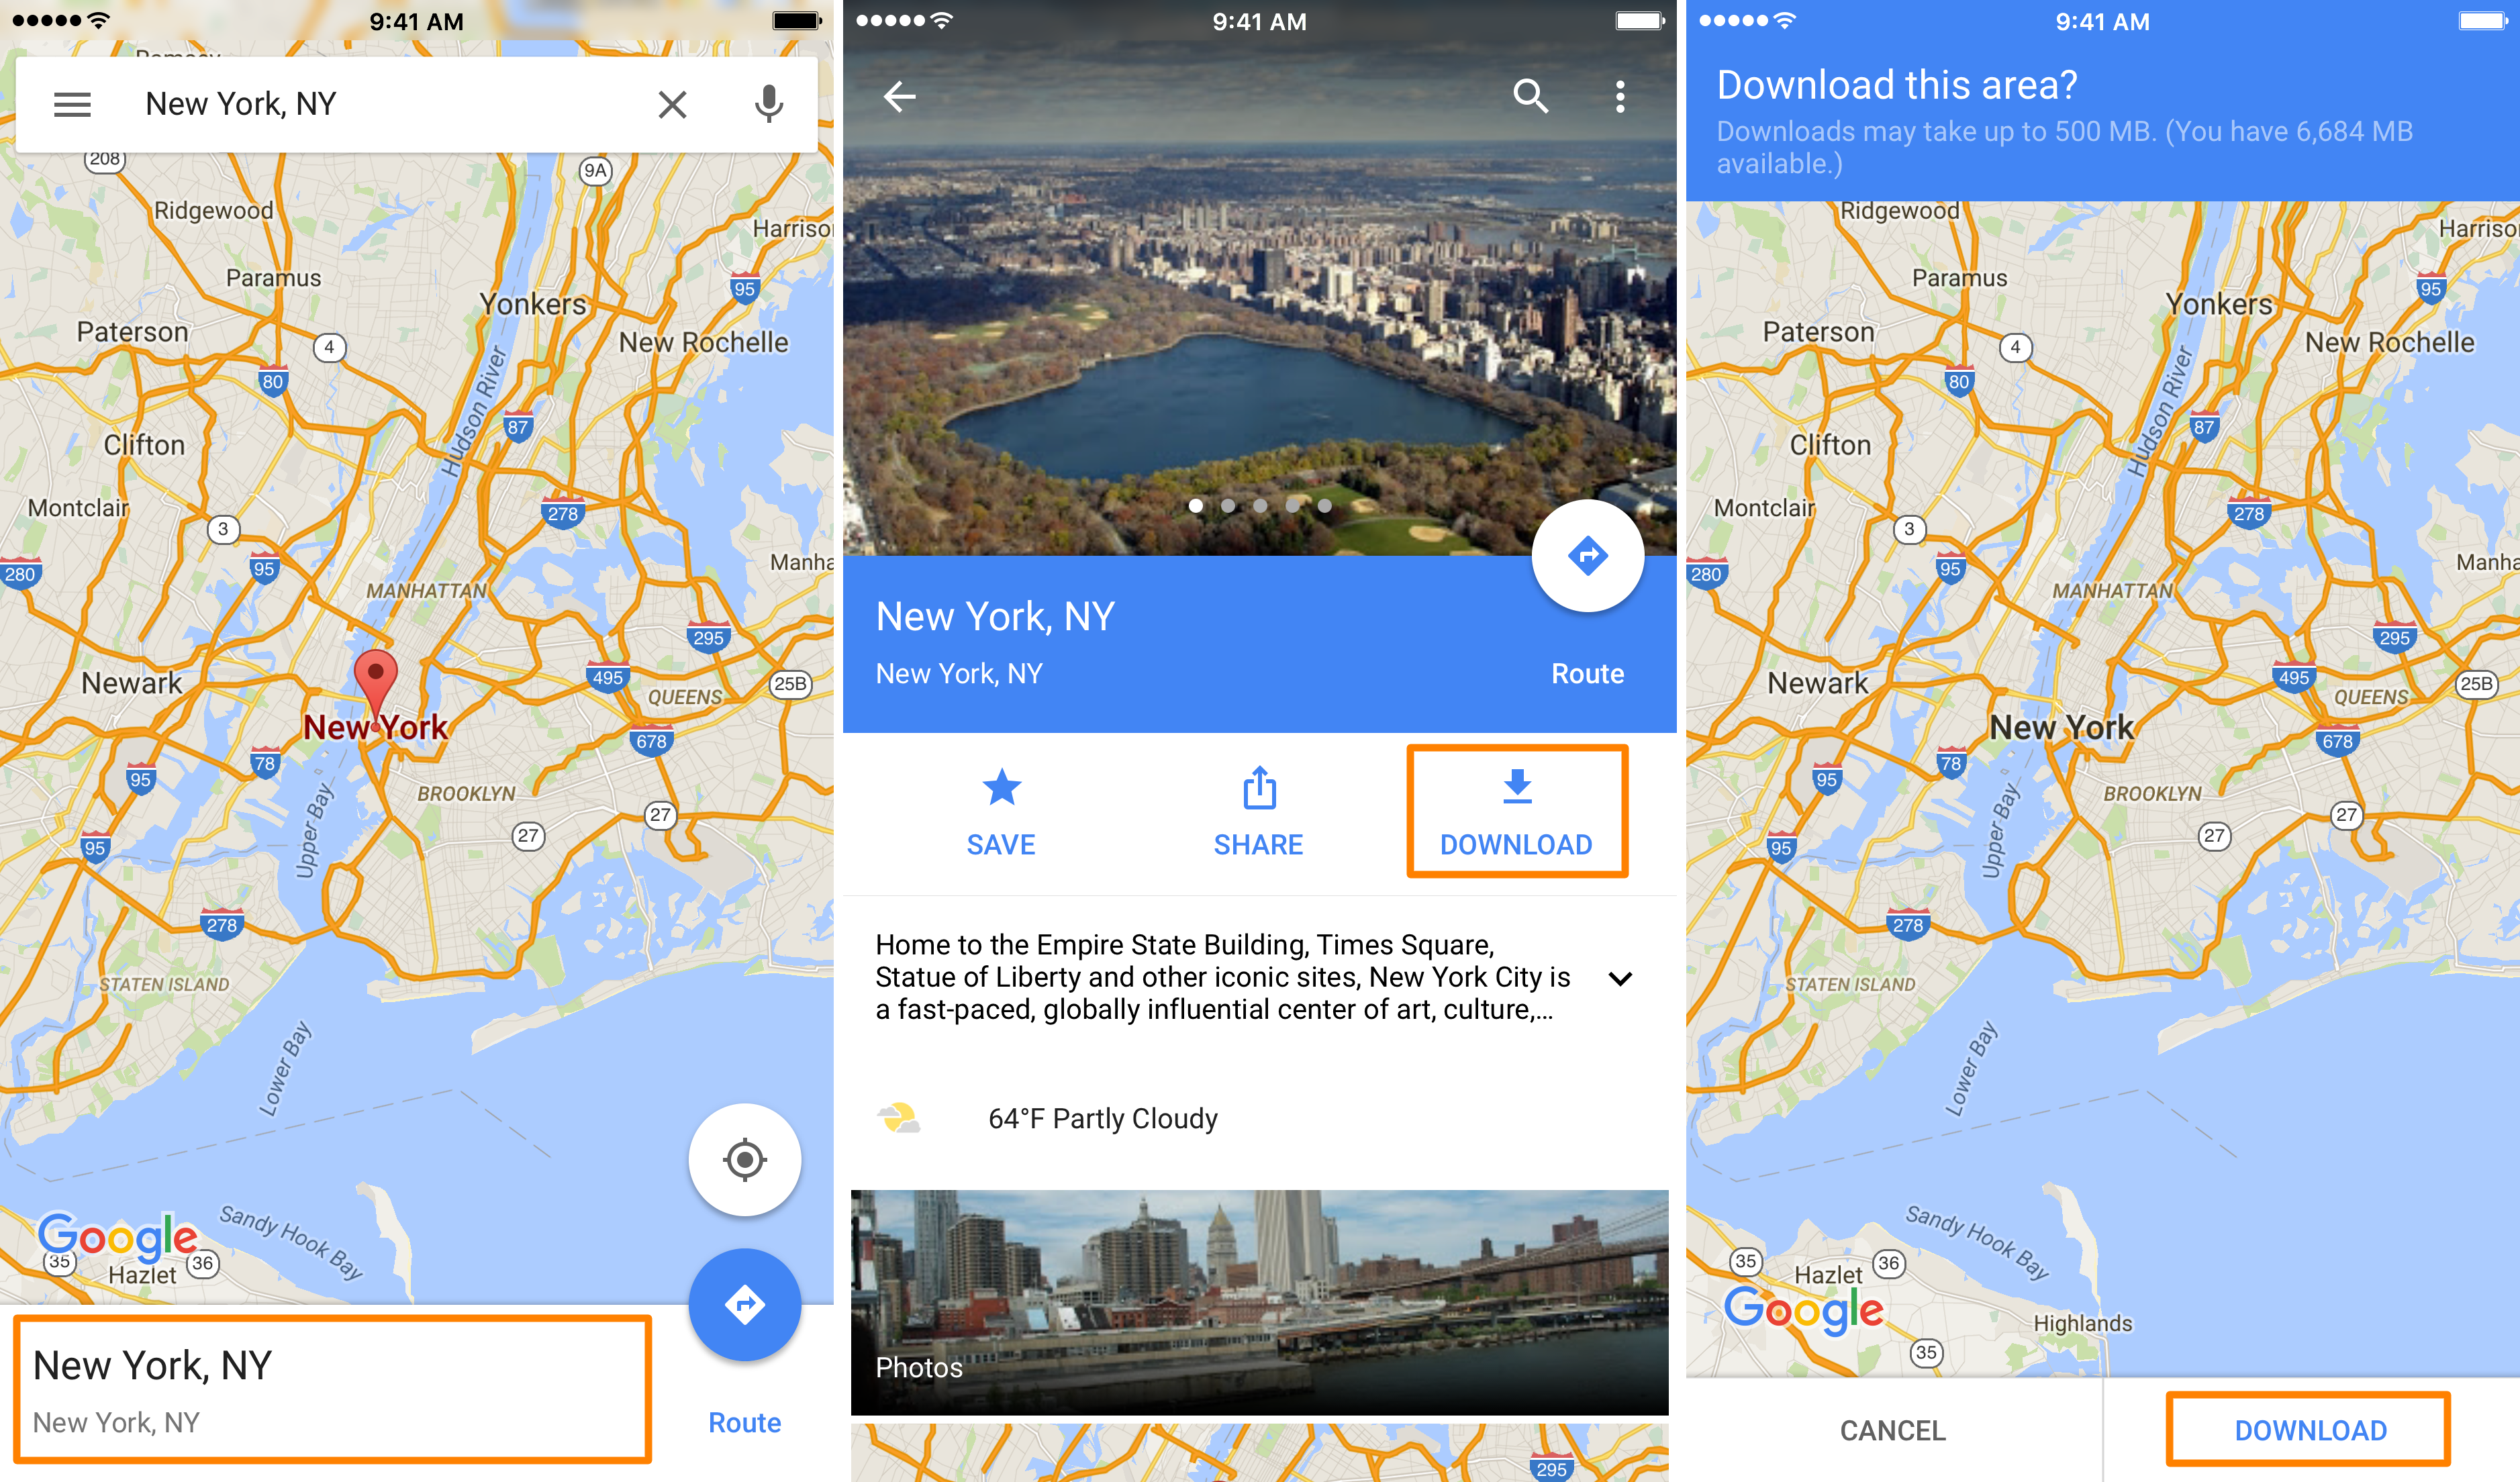 Iphone Map Of New York Offline.How To Download Areas In Google Maps For Offline Use